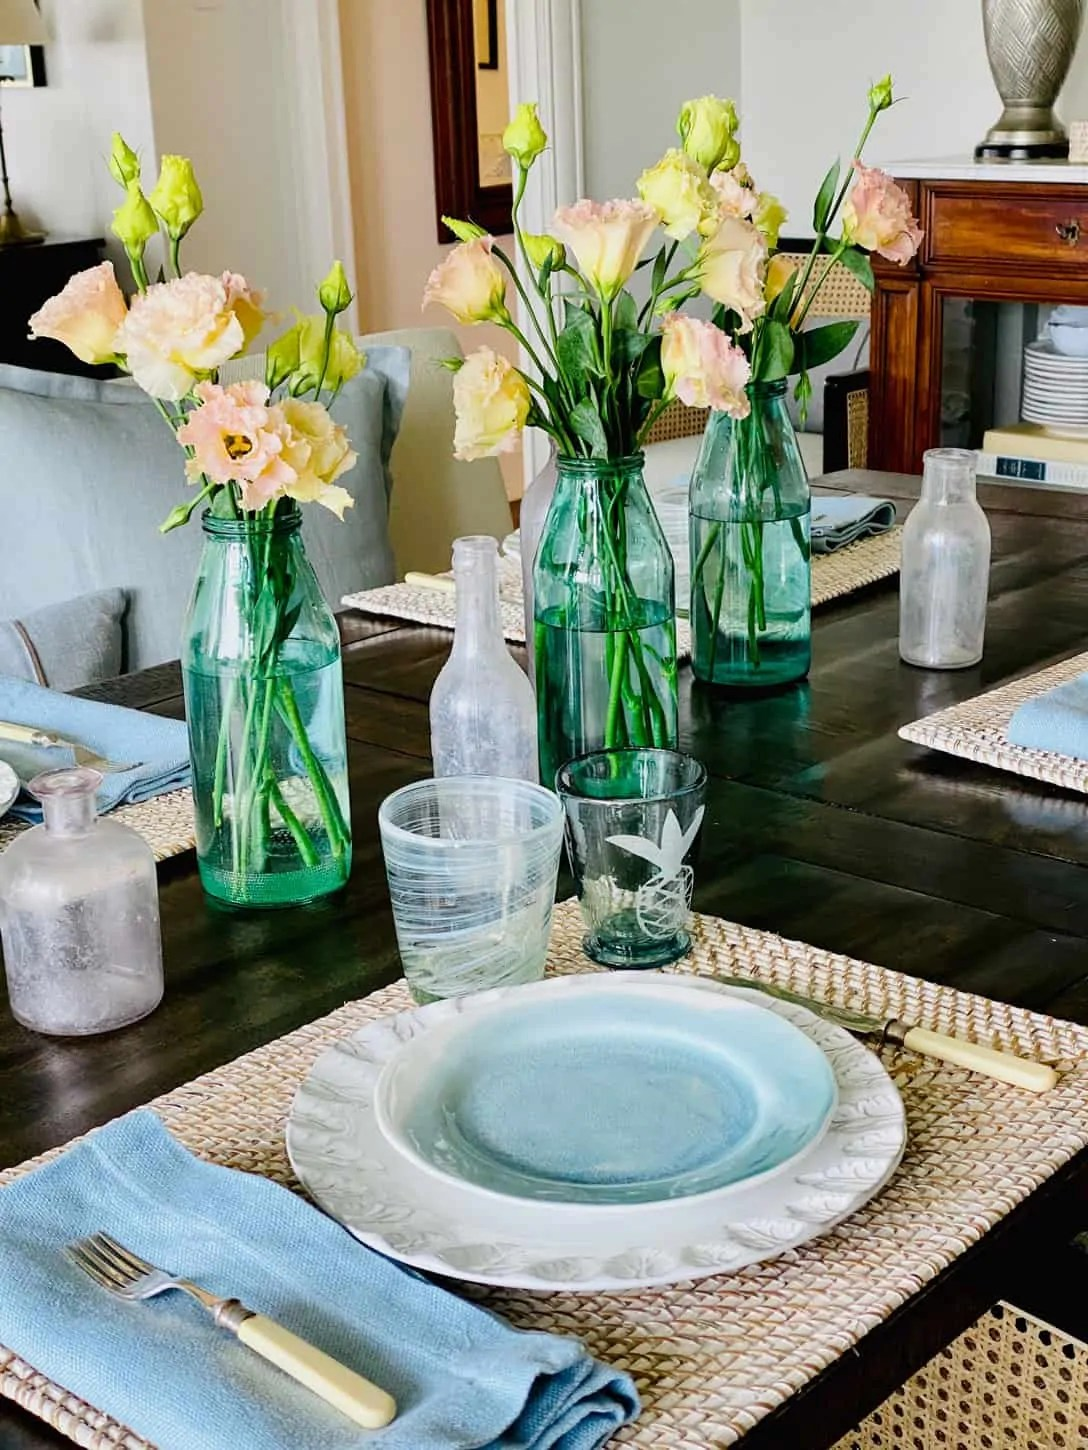 white washed place mats with aqua napkins and plates